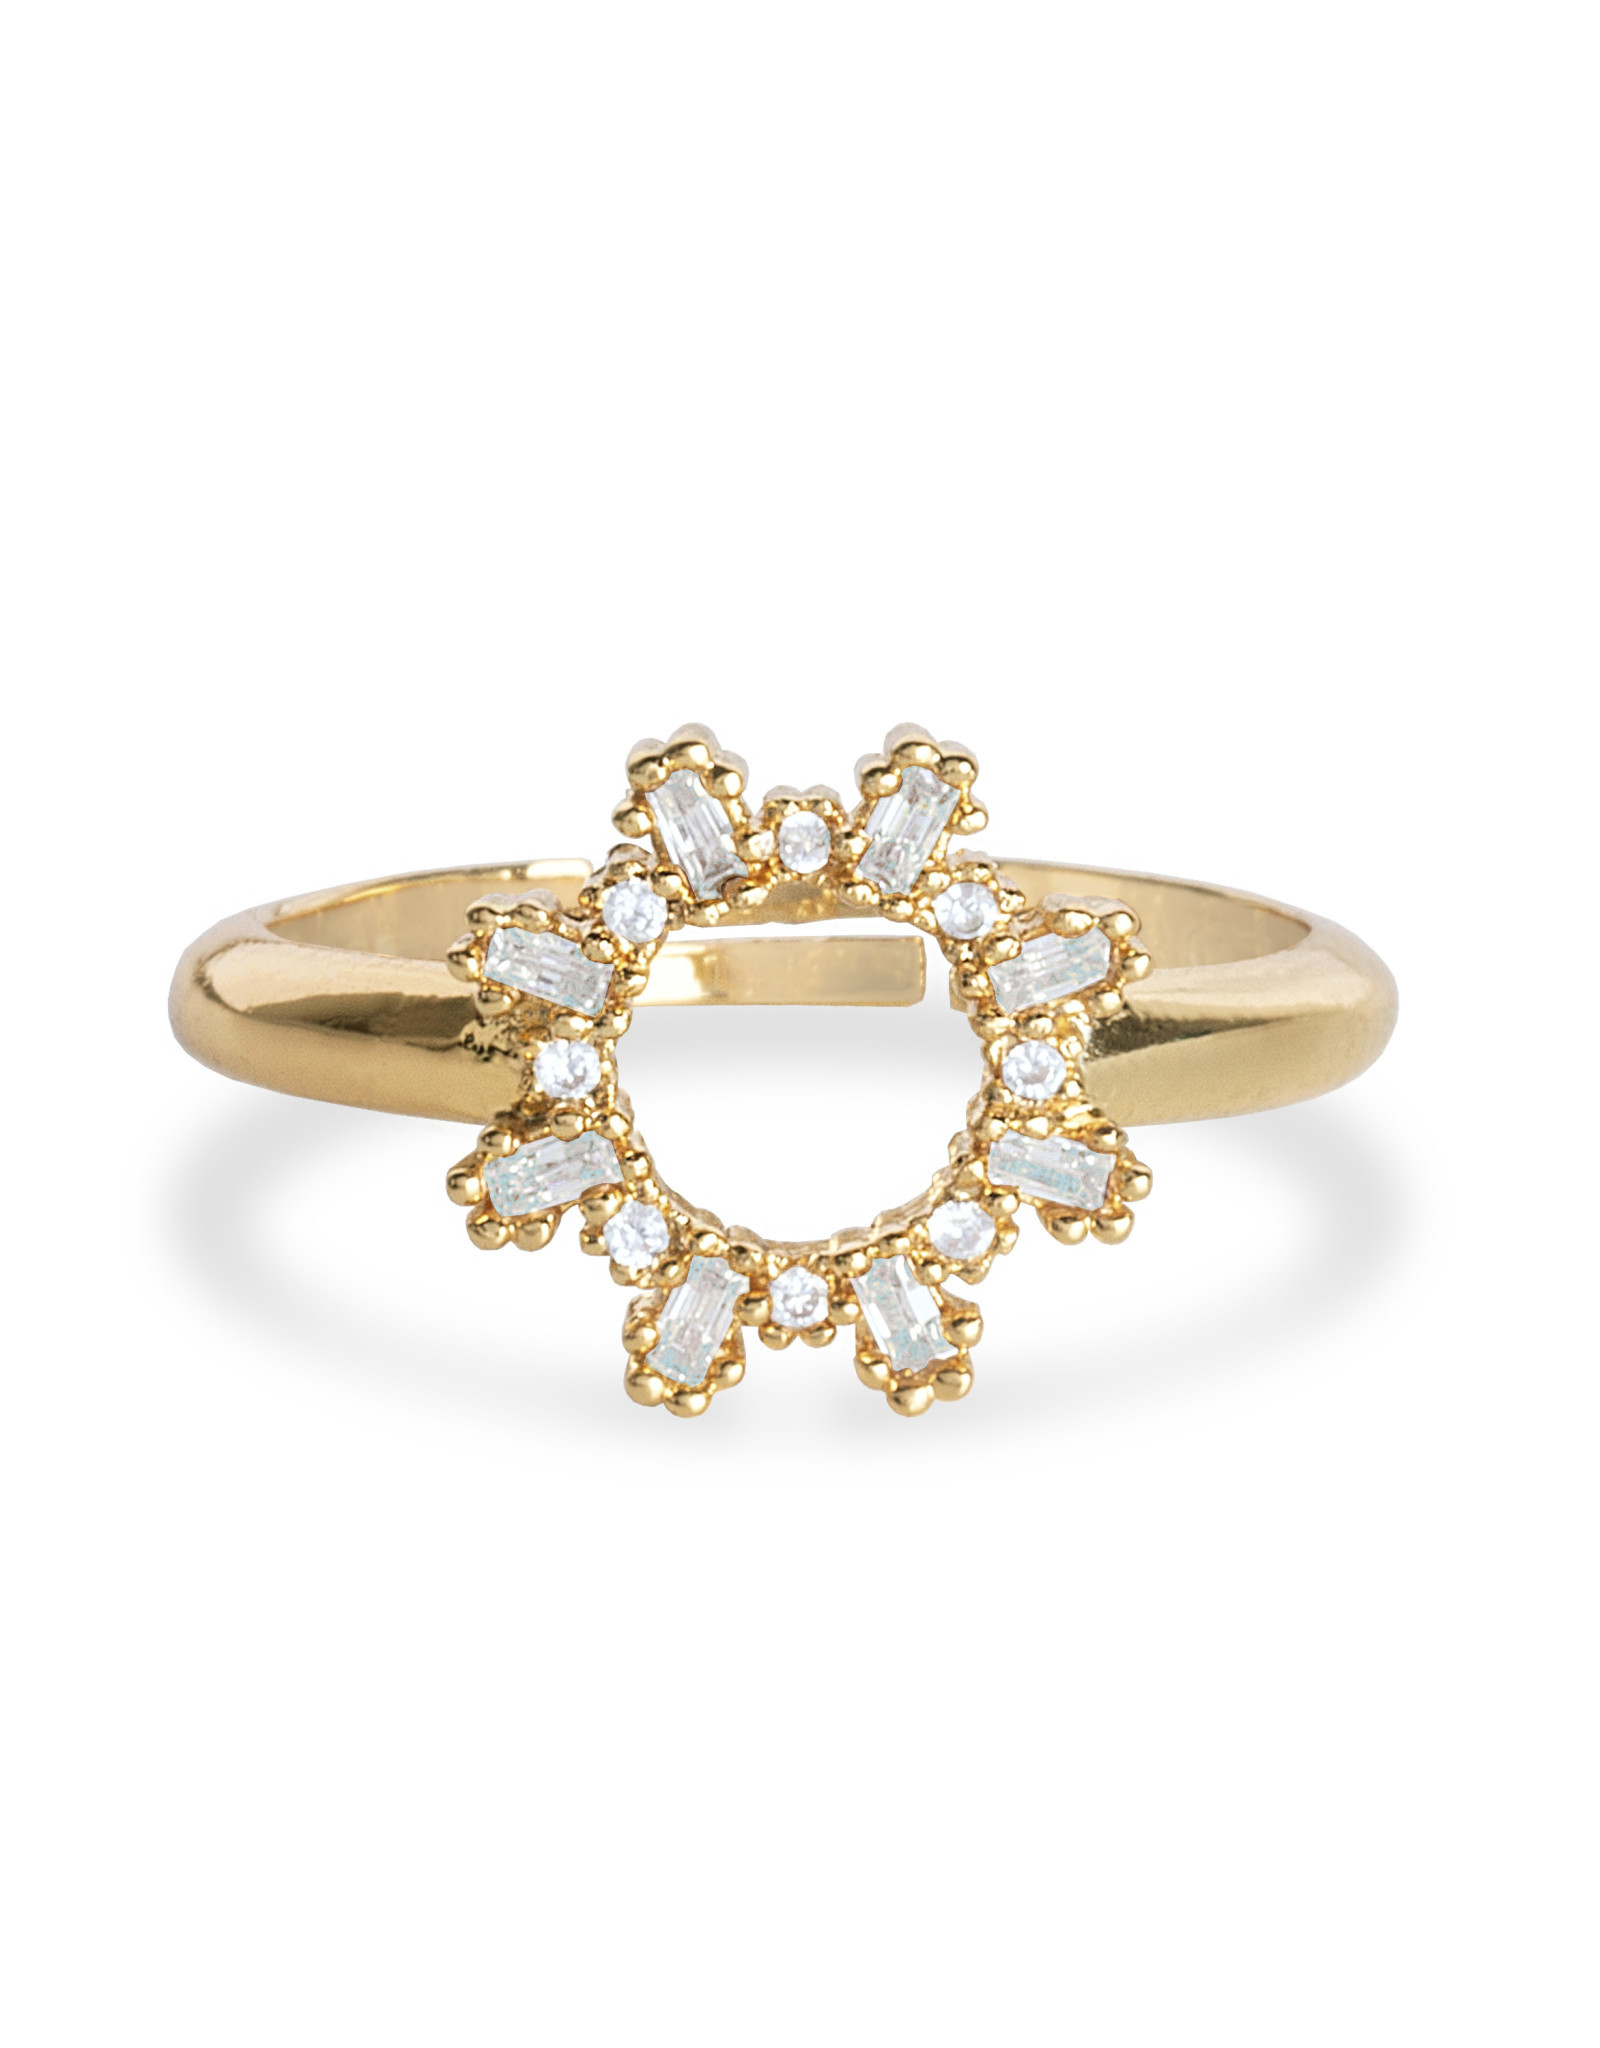 Katie Loxton KLRadiance - Ring Baguette and round CZ - Yellow/Gold Plated - Adjustable Size M